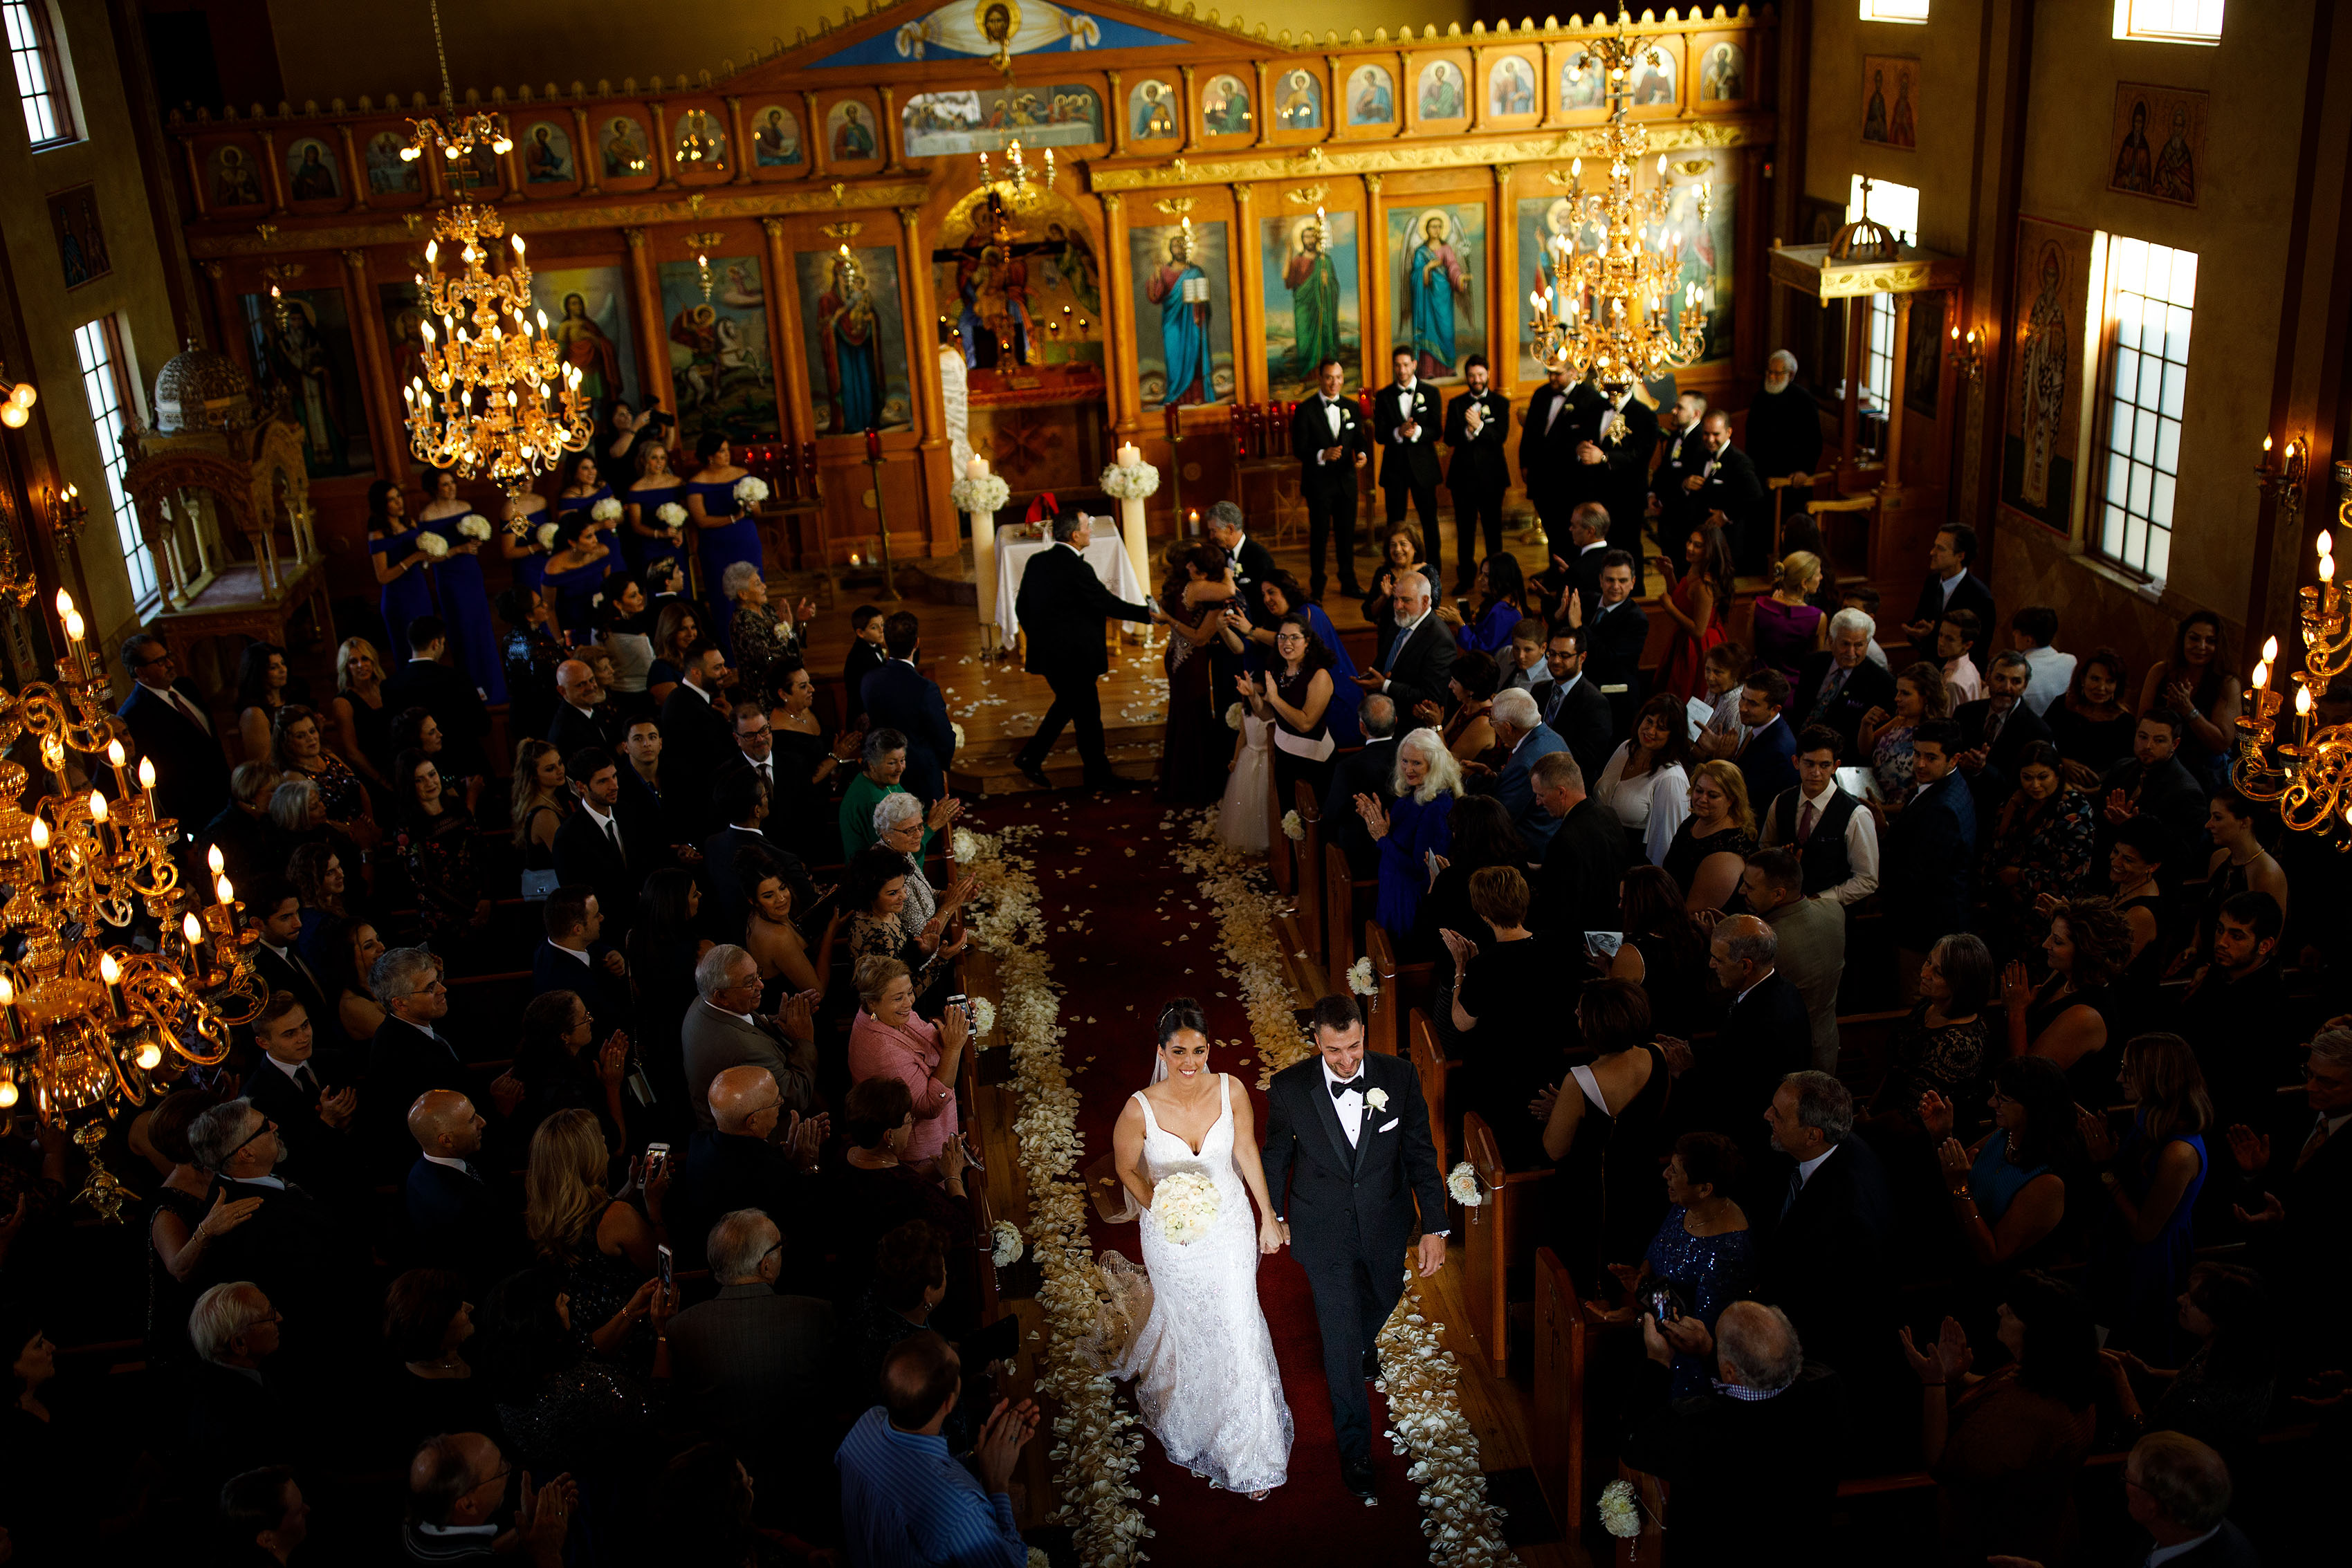 The bride and groom walk down the aisle during their Albuquerque Greek Orthodox wedding at Saint George